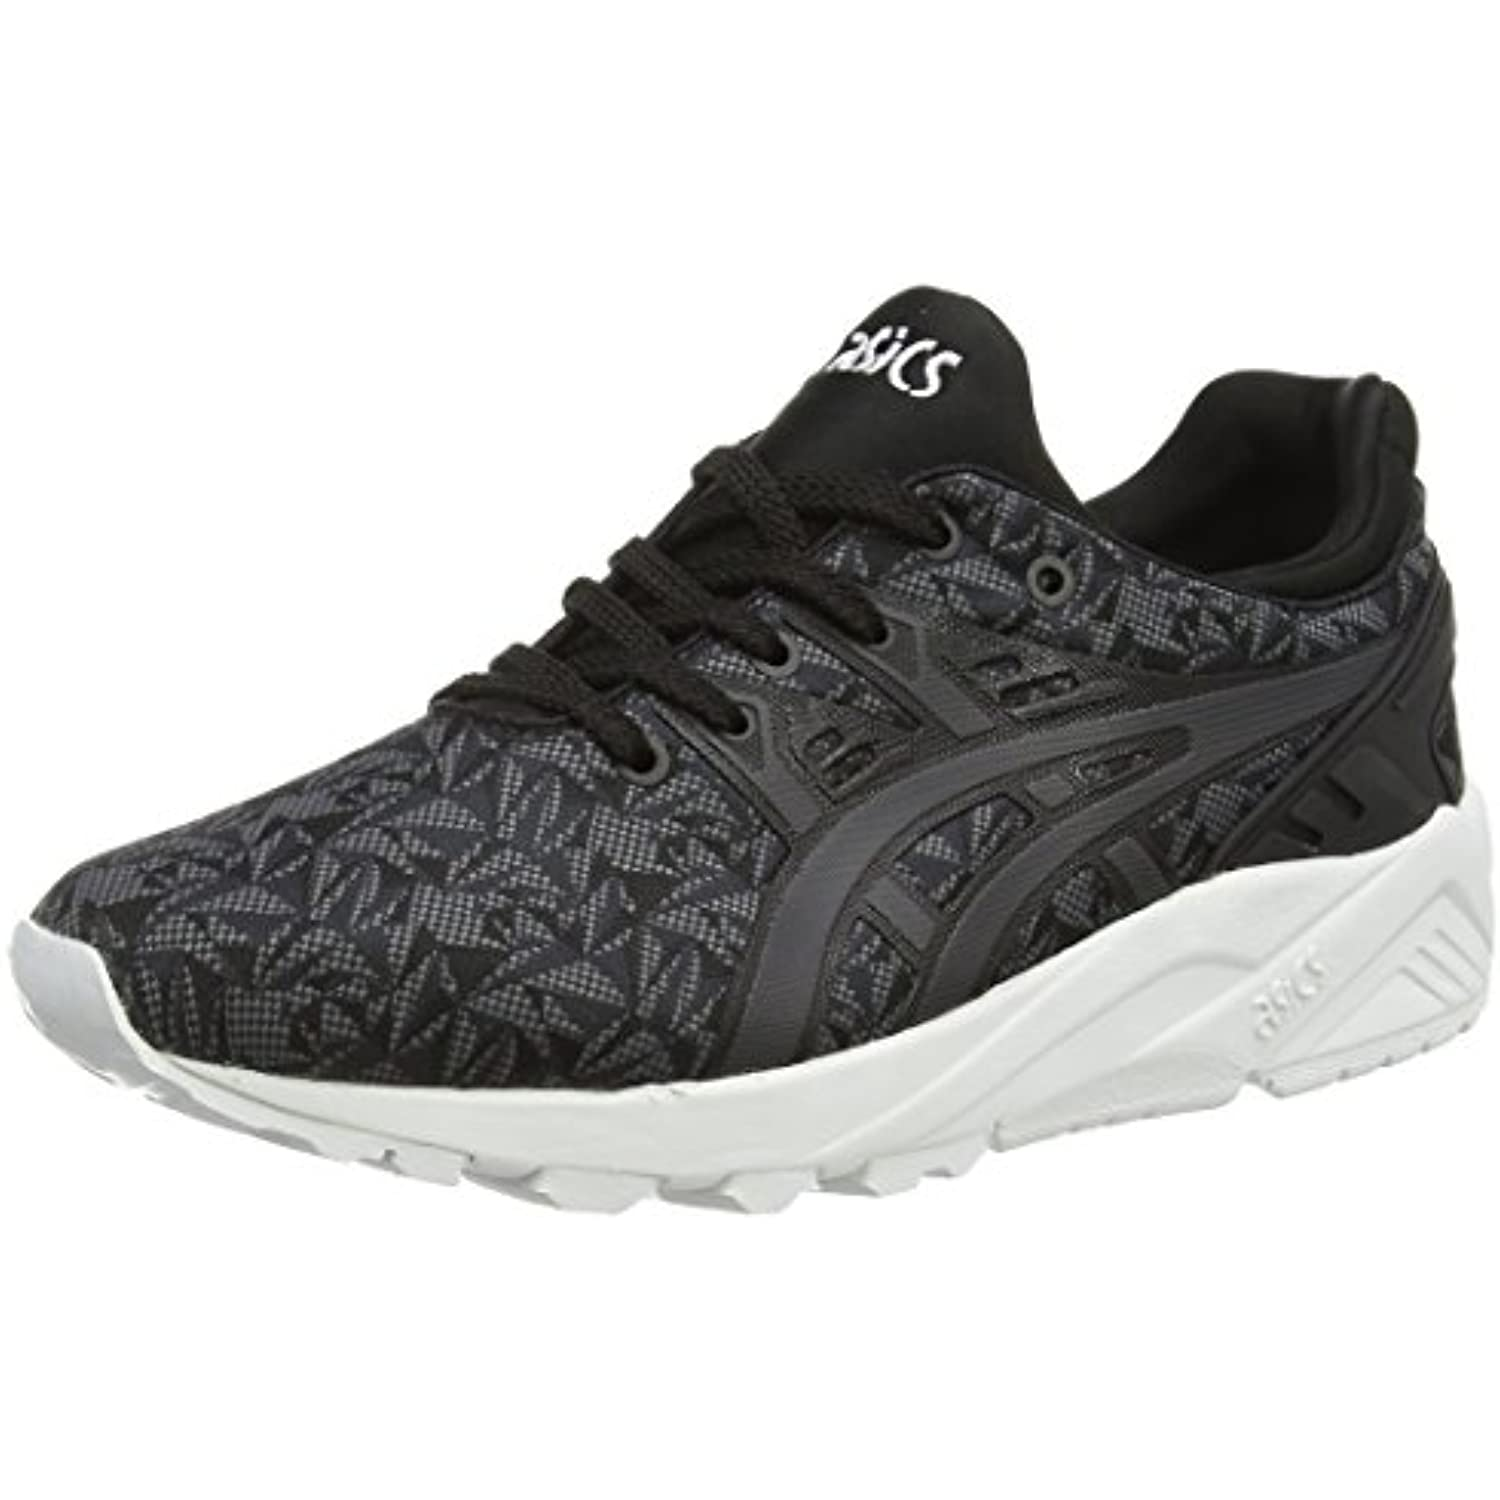 ASICS Gel-Kayano Trainer Chaussures Evo, Chaussures Trainer Mixte Adulte - B01C4NI4FS - 62671a